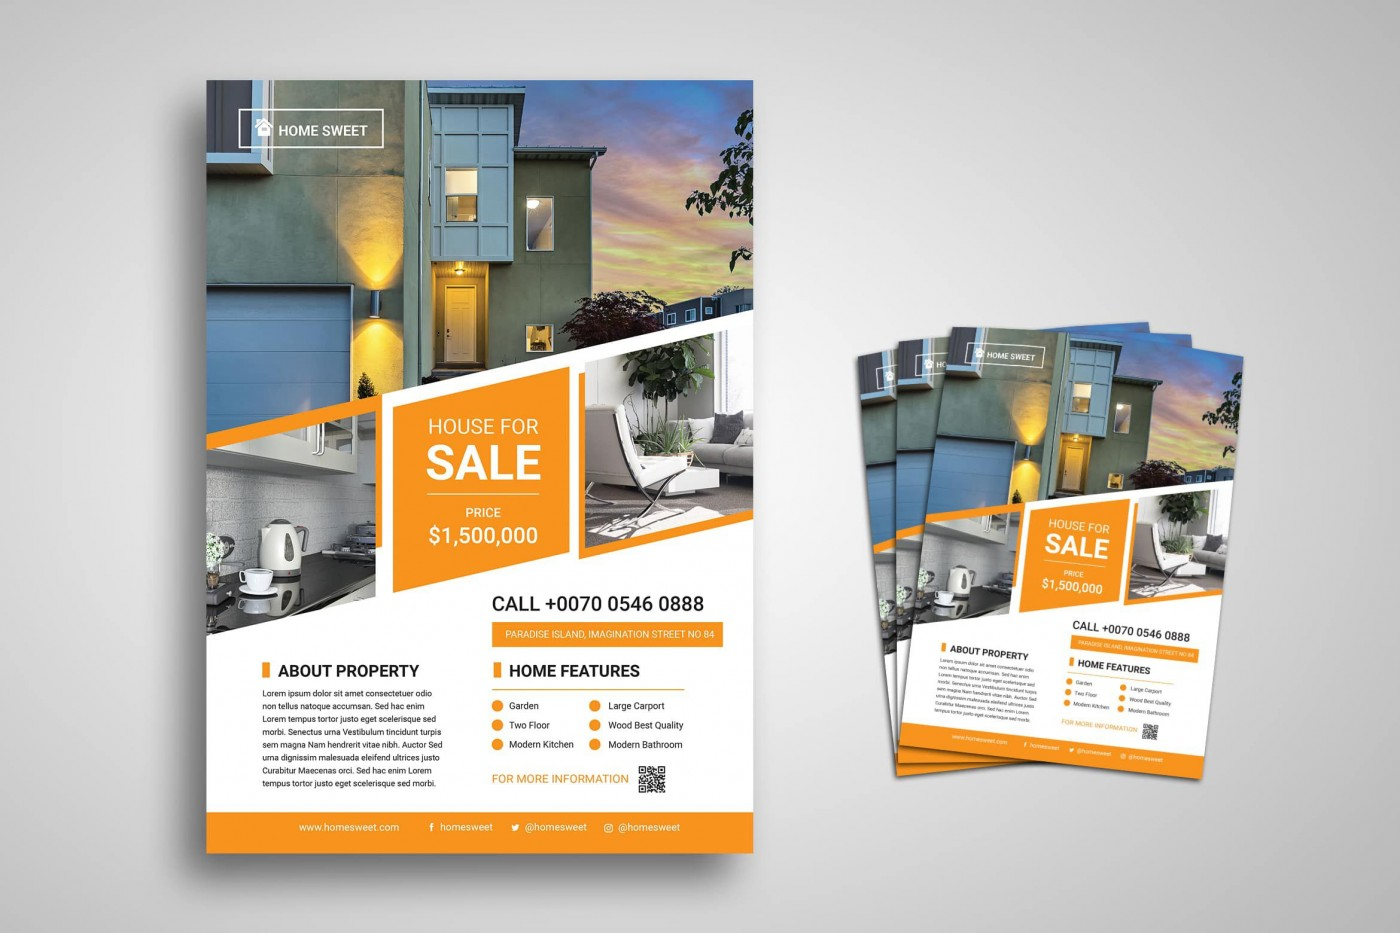 003 Unique House For Sale Flyer Template Highest Quality  Free Real Estate Example By Owner1400